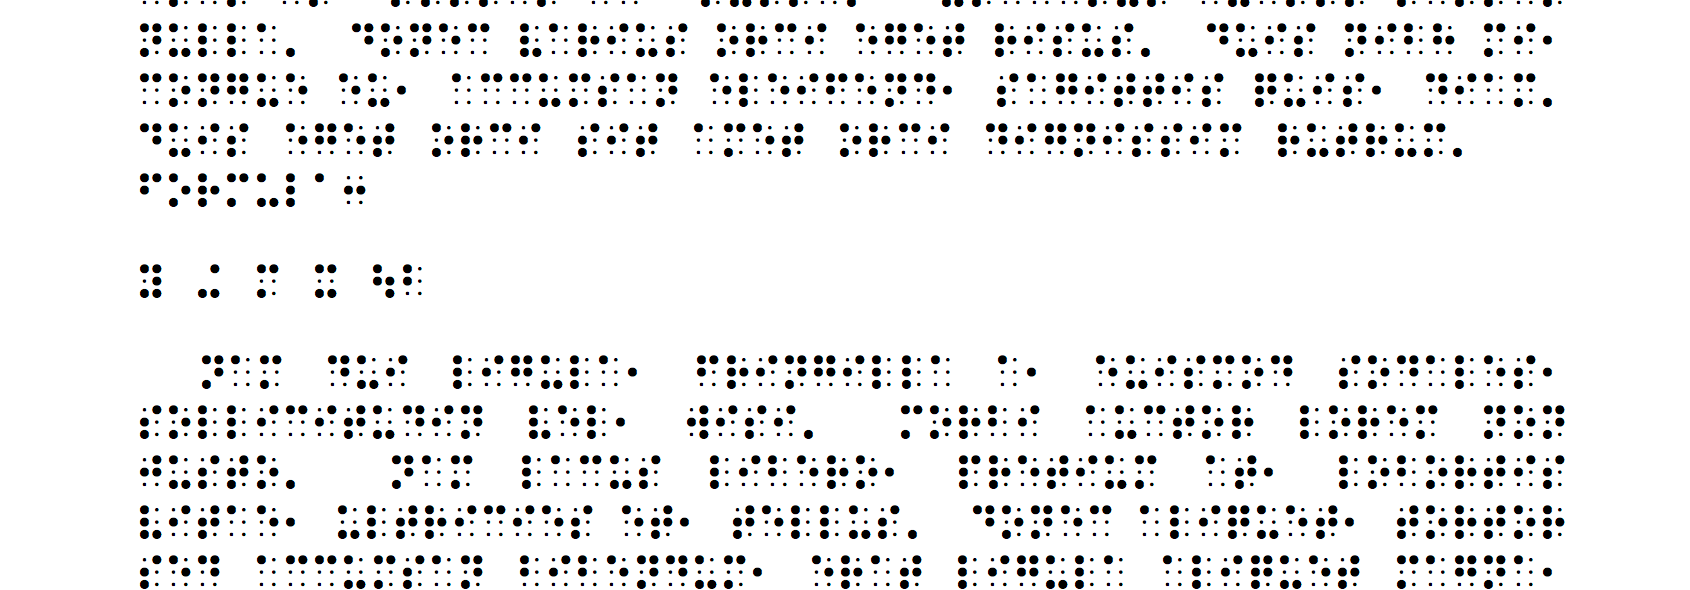 Tex4ht LaTeX To Braille TeX LaTeX Stack Exchange